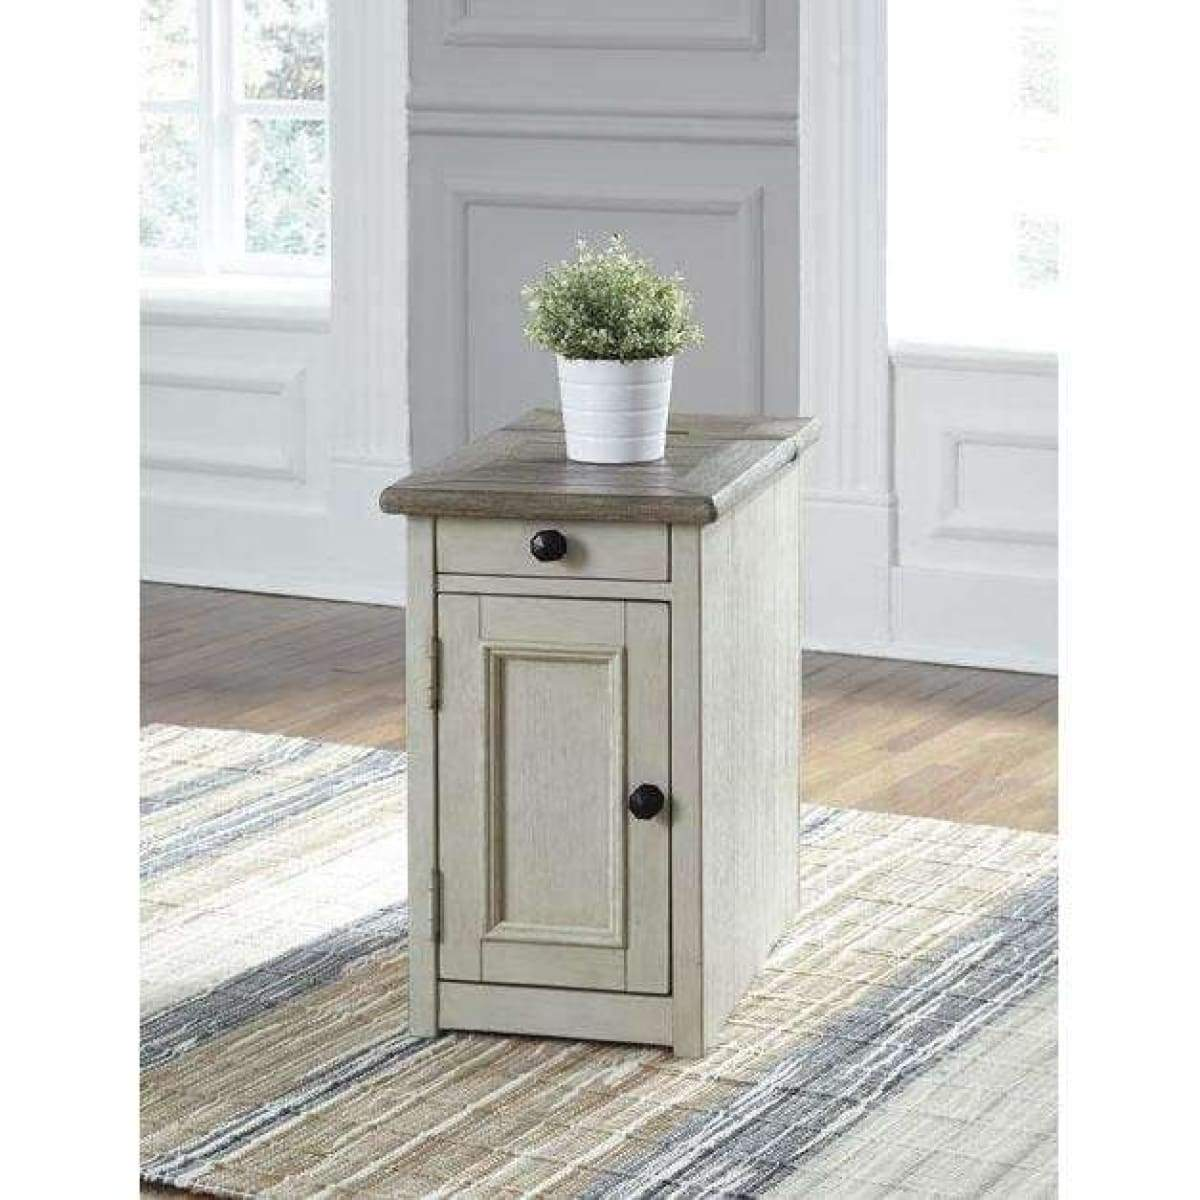 Bolanburg Two-Tone Chairside End Table - END TABLE/SIDE TABLE